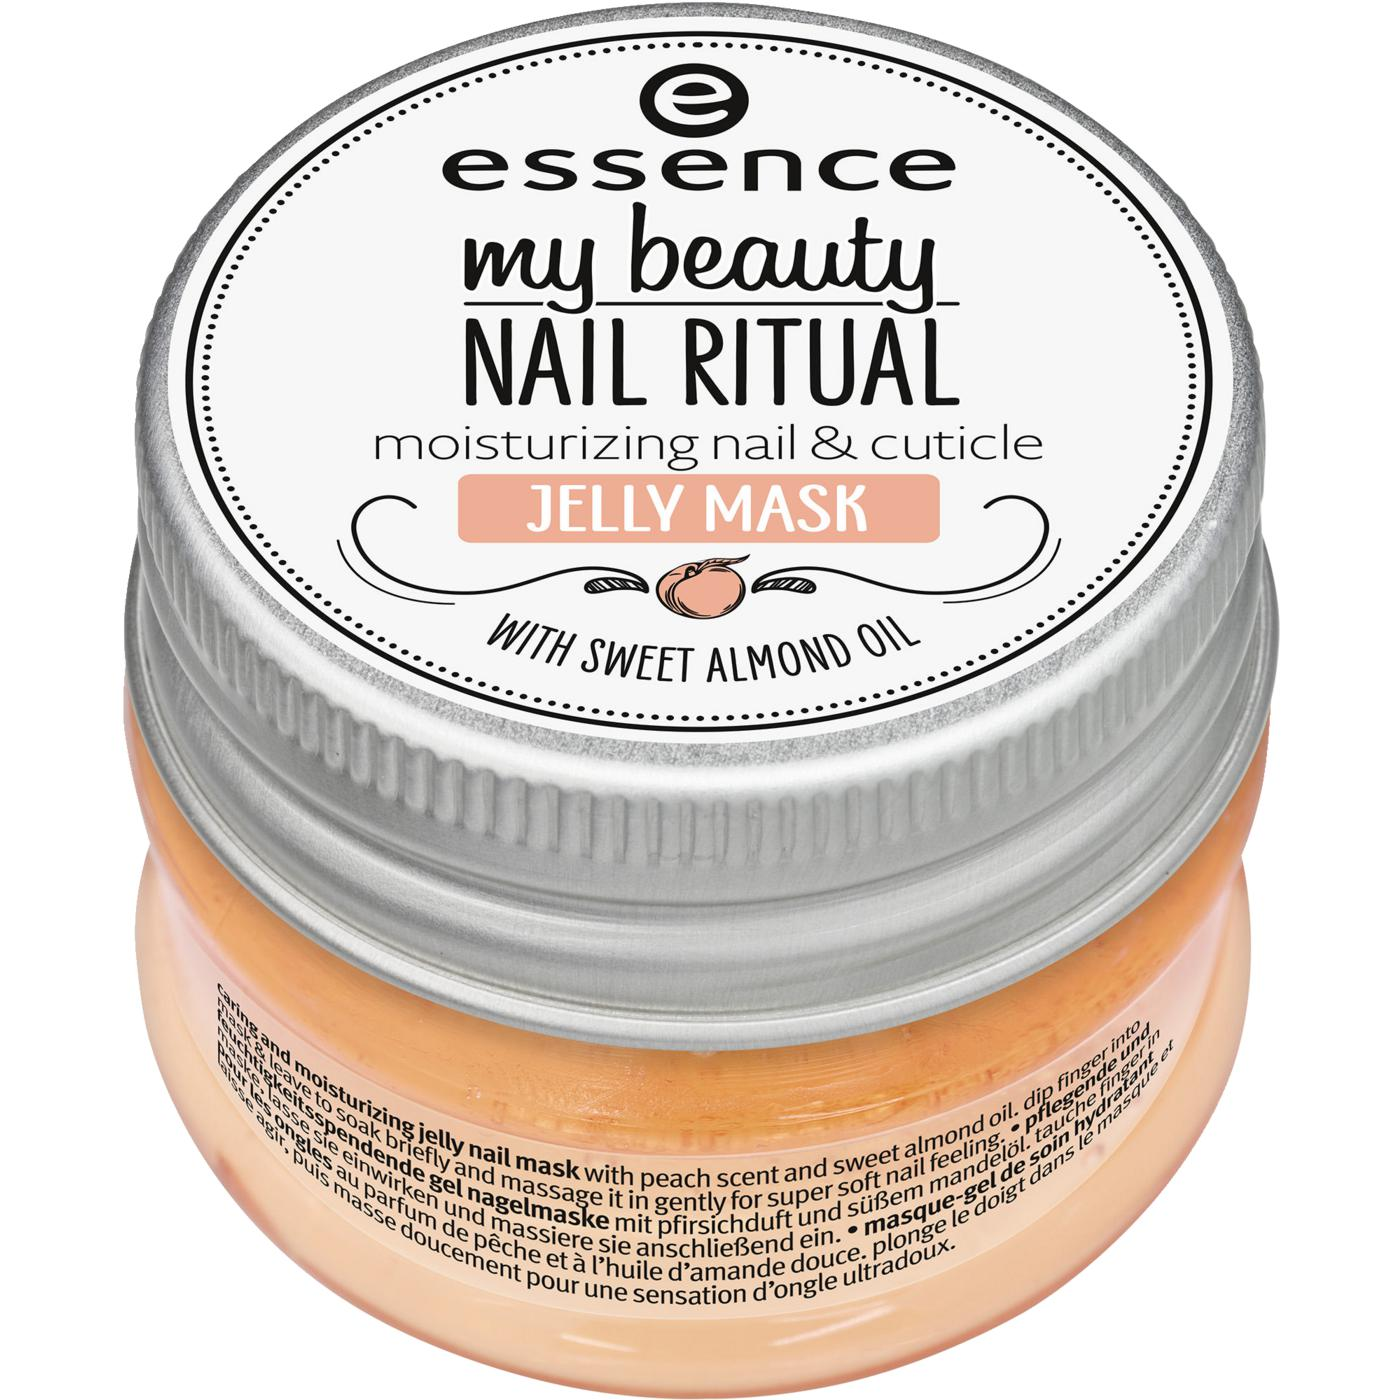 essence my beauty nail ritual moisturizing nail & cuticle jelly mask